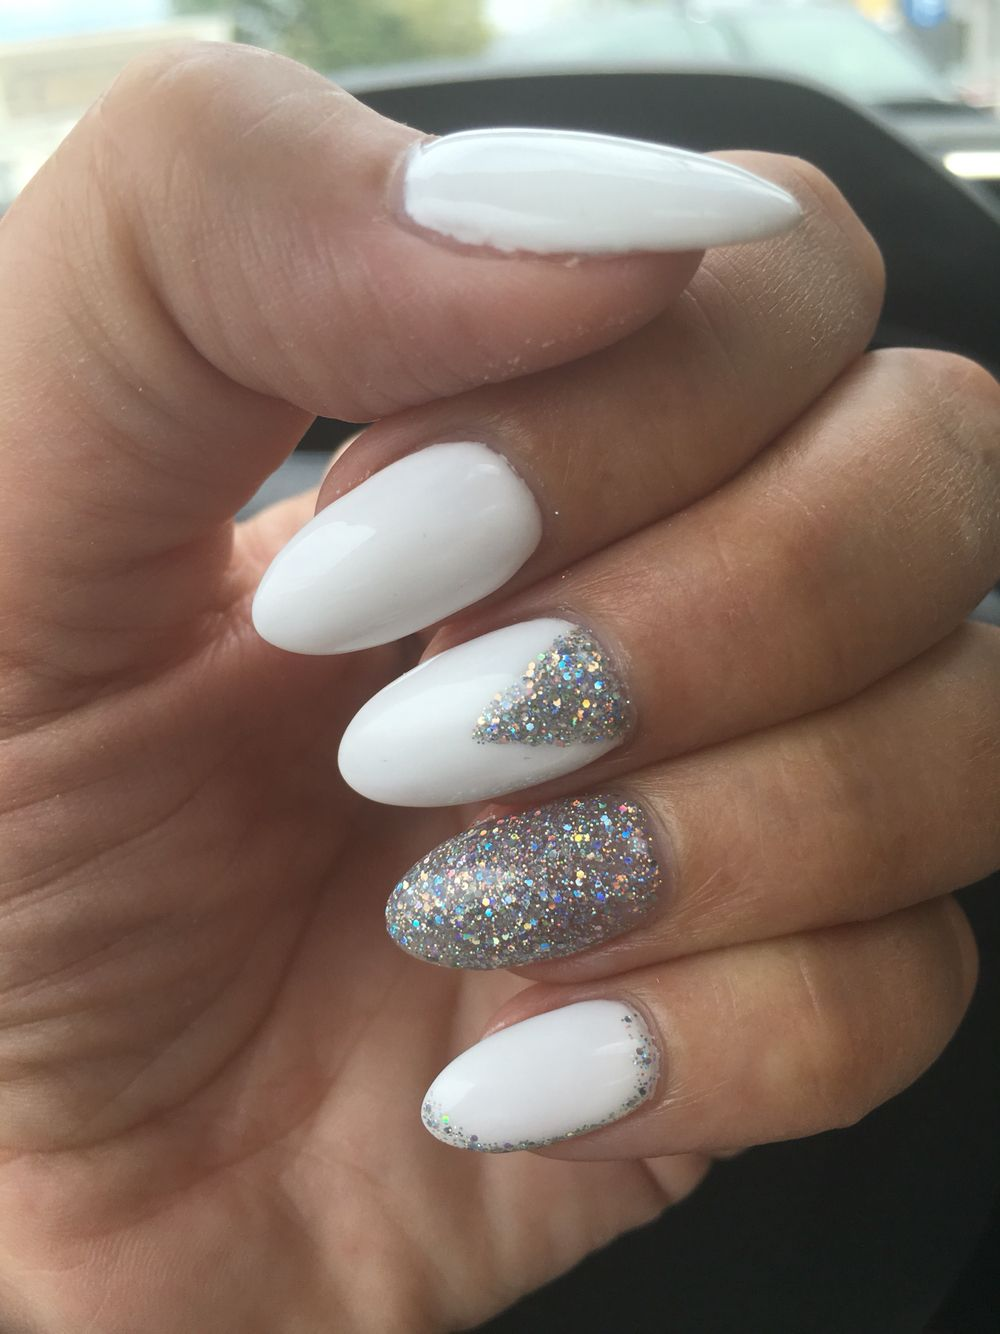 white nails with silver glitter design fingers and toes